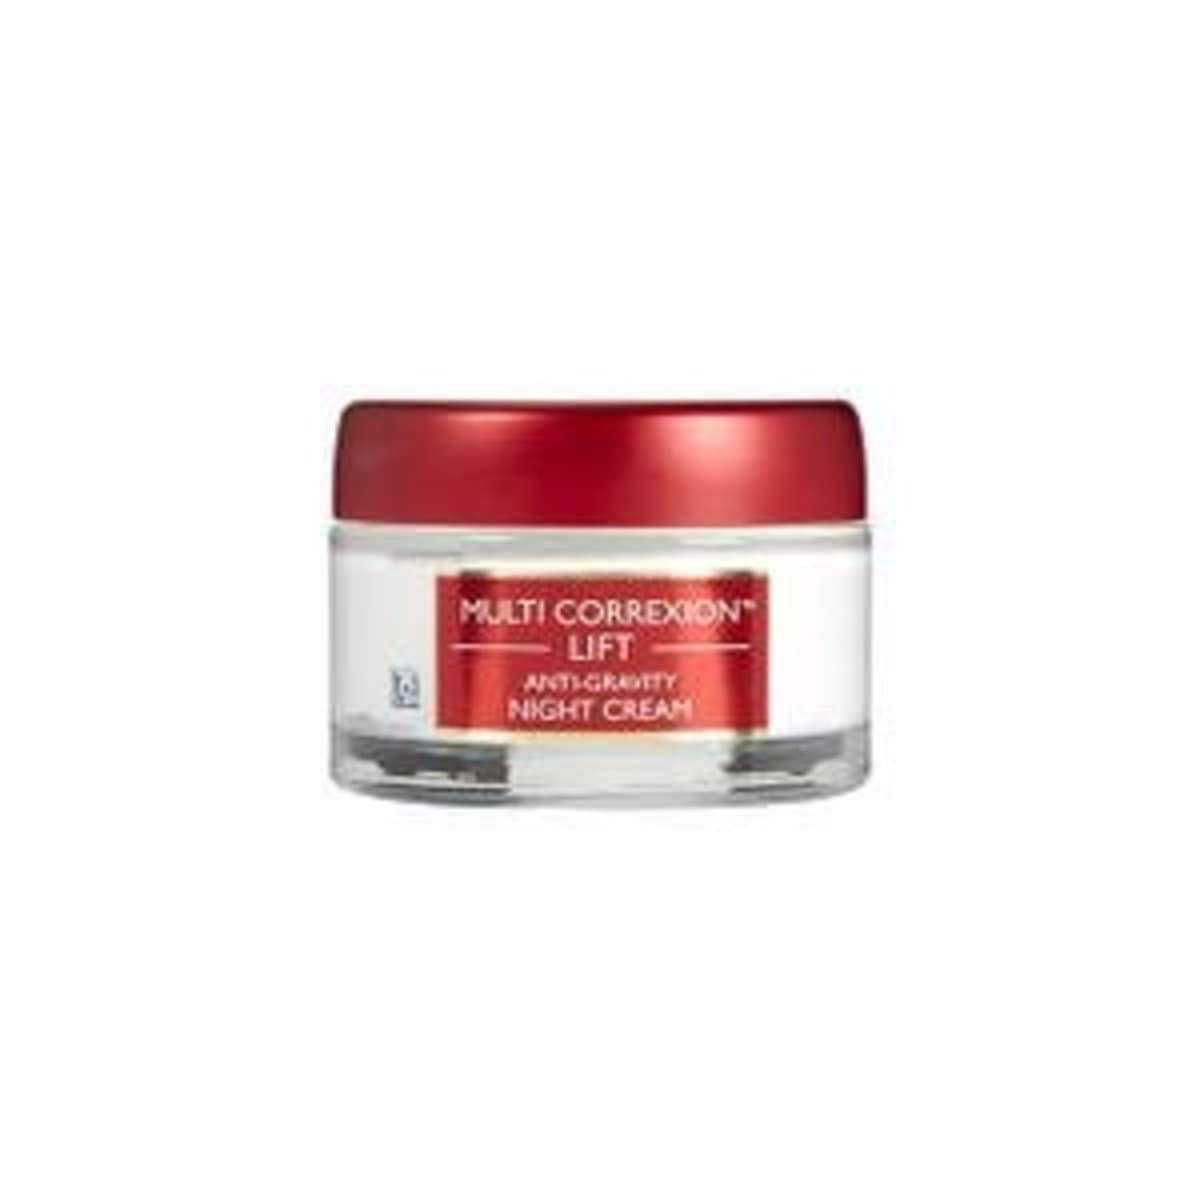 MULTI CORREXION LIFT ANTI GRAVITY NIGHT CREAM